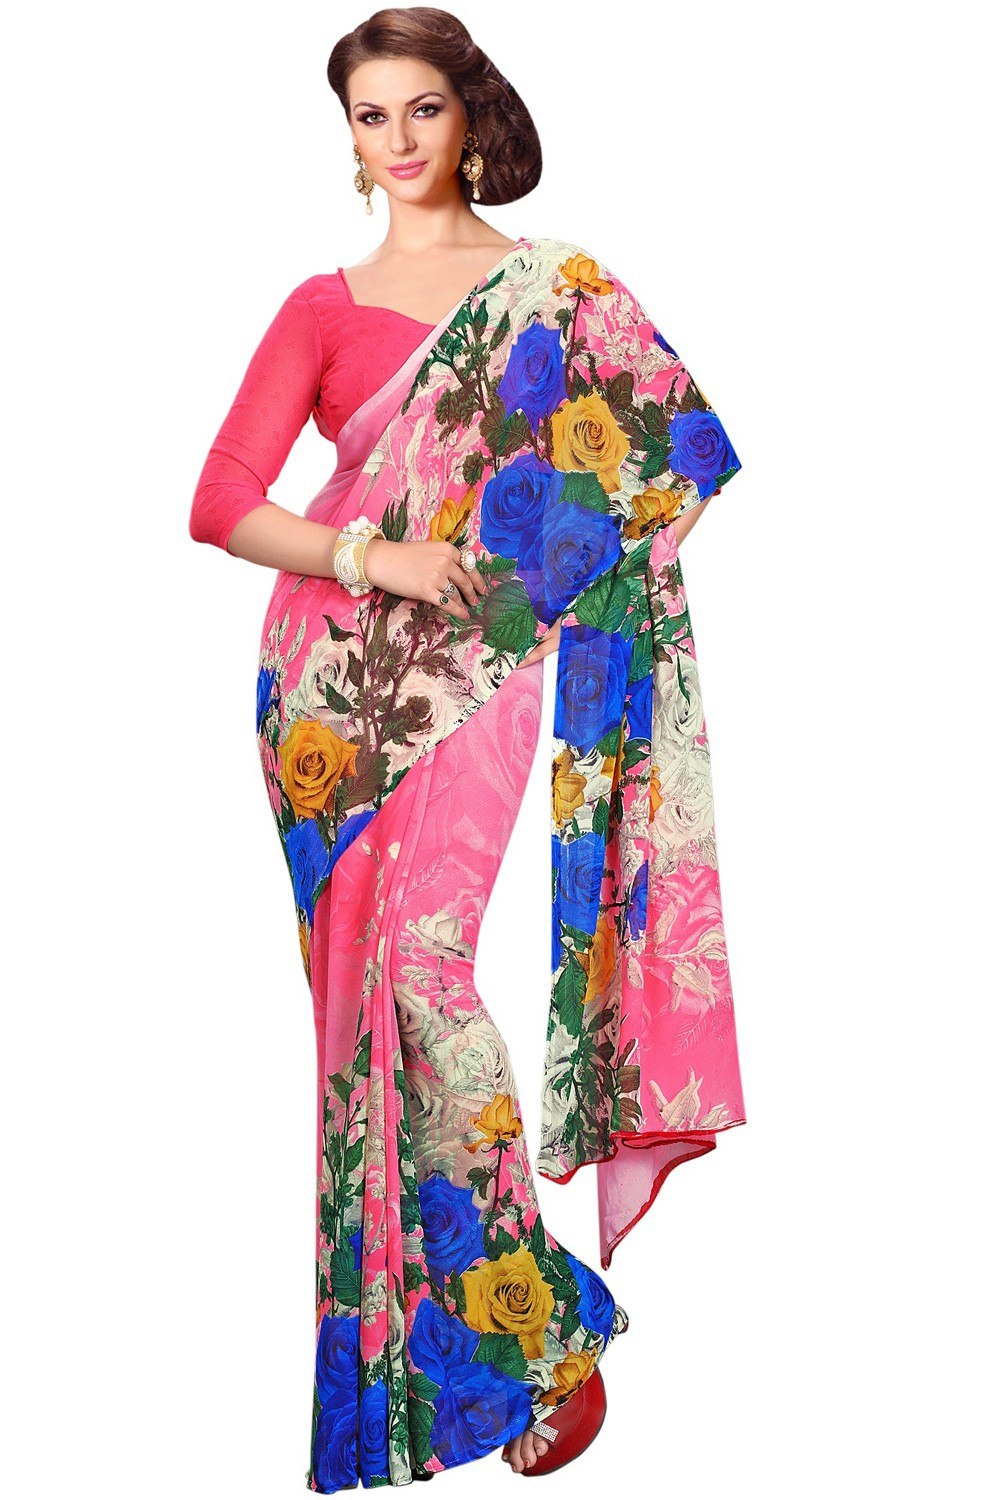 Paaneri Multicolor Floral Georgette Printed Saree Product Code-16120020912